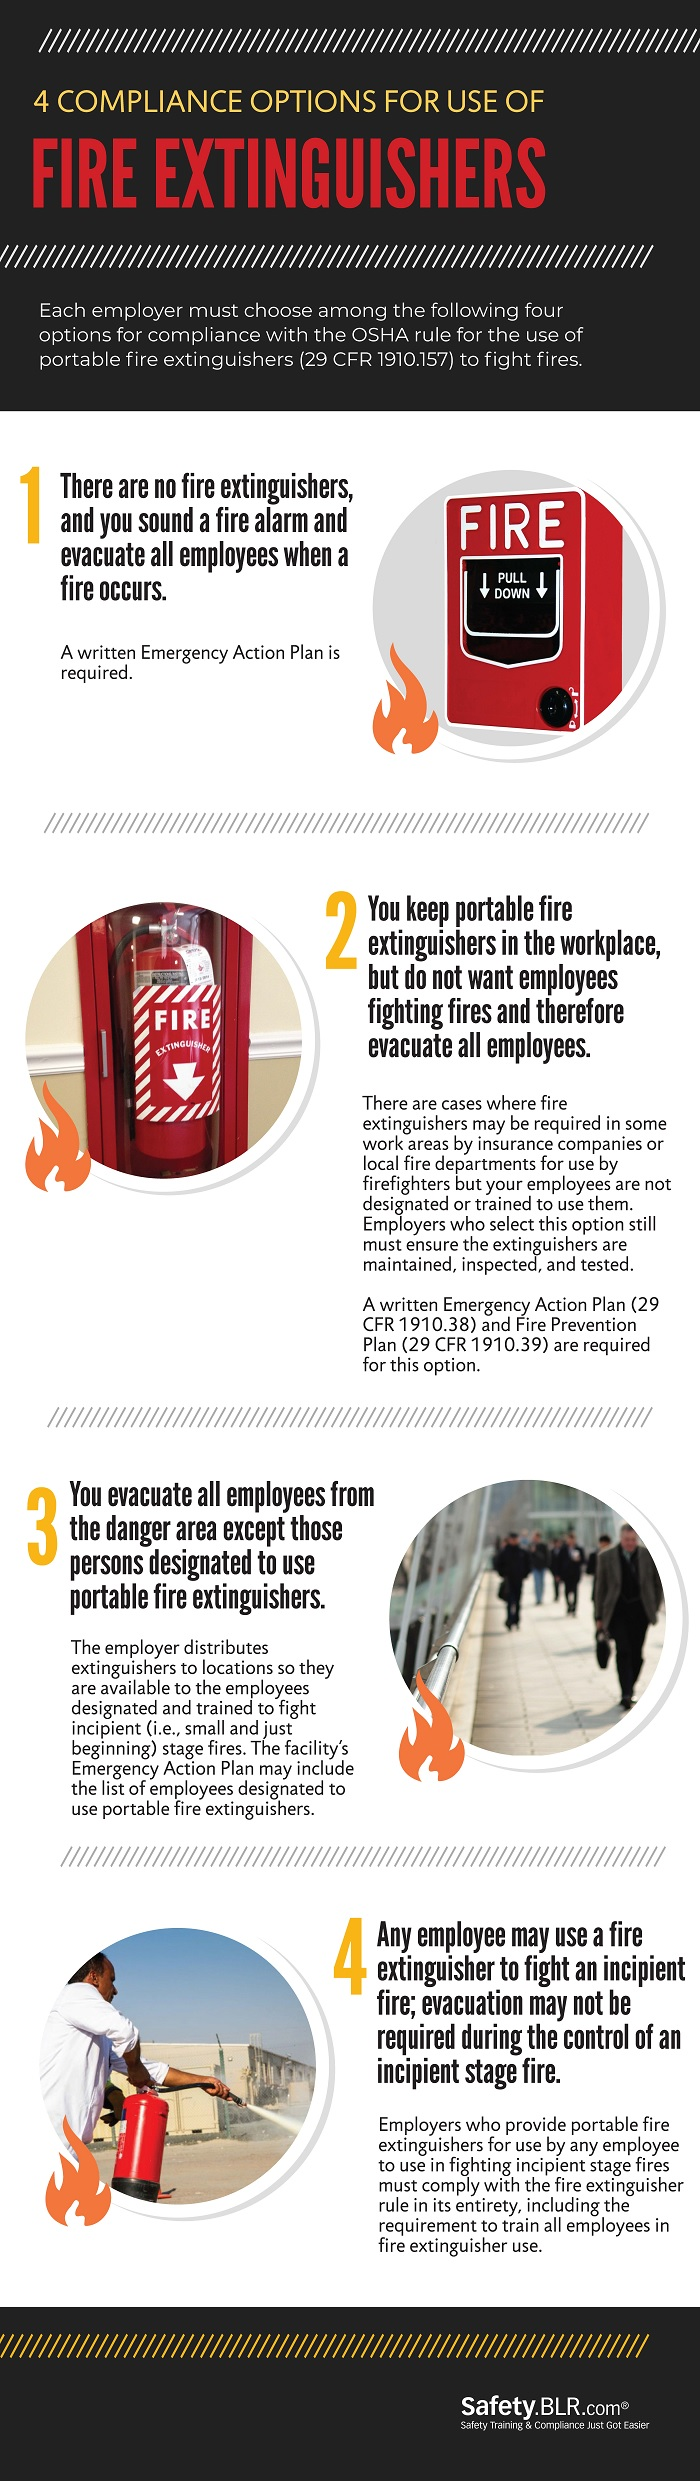 Extinguishers infographic